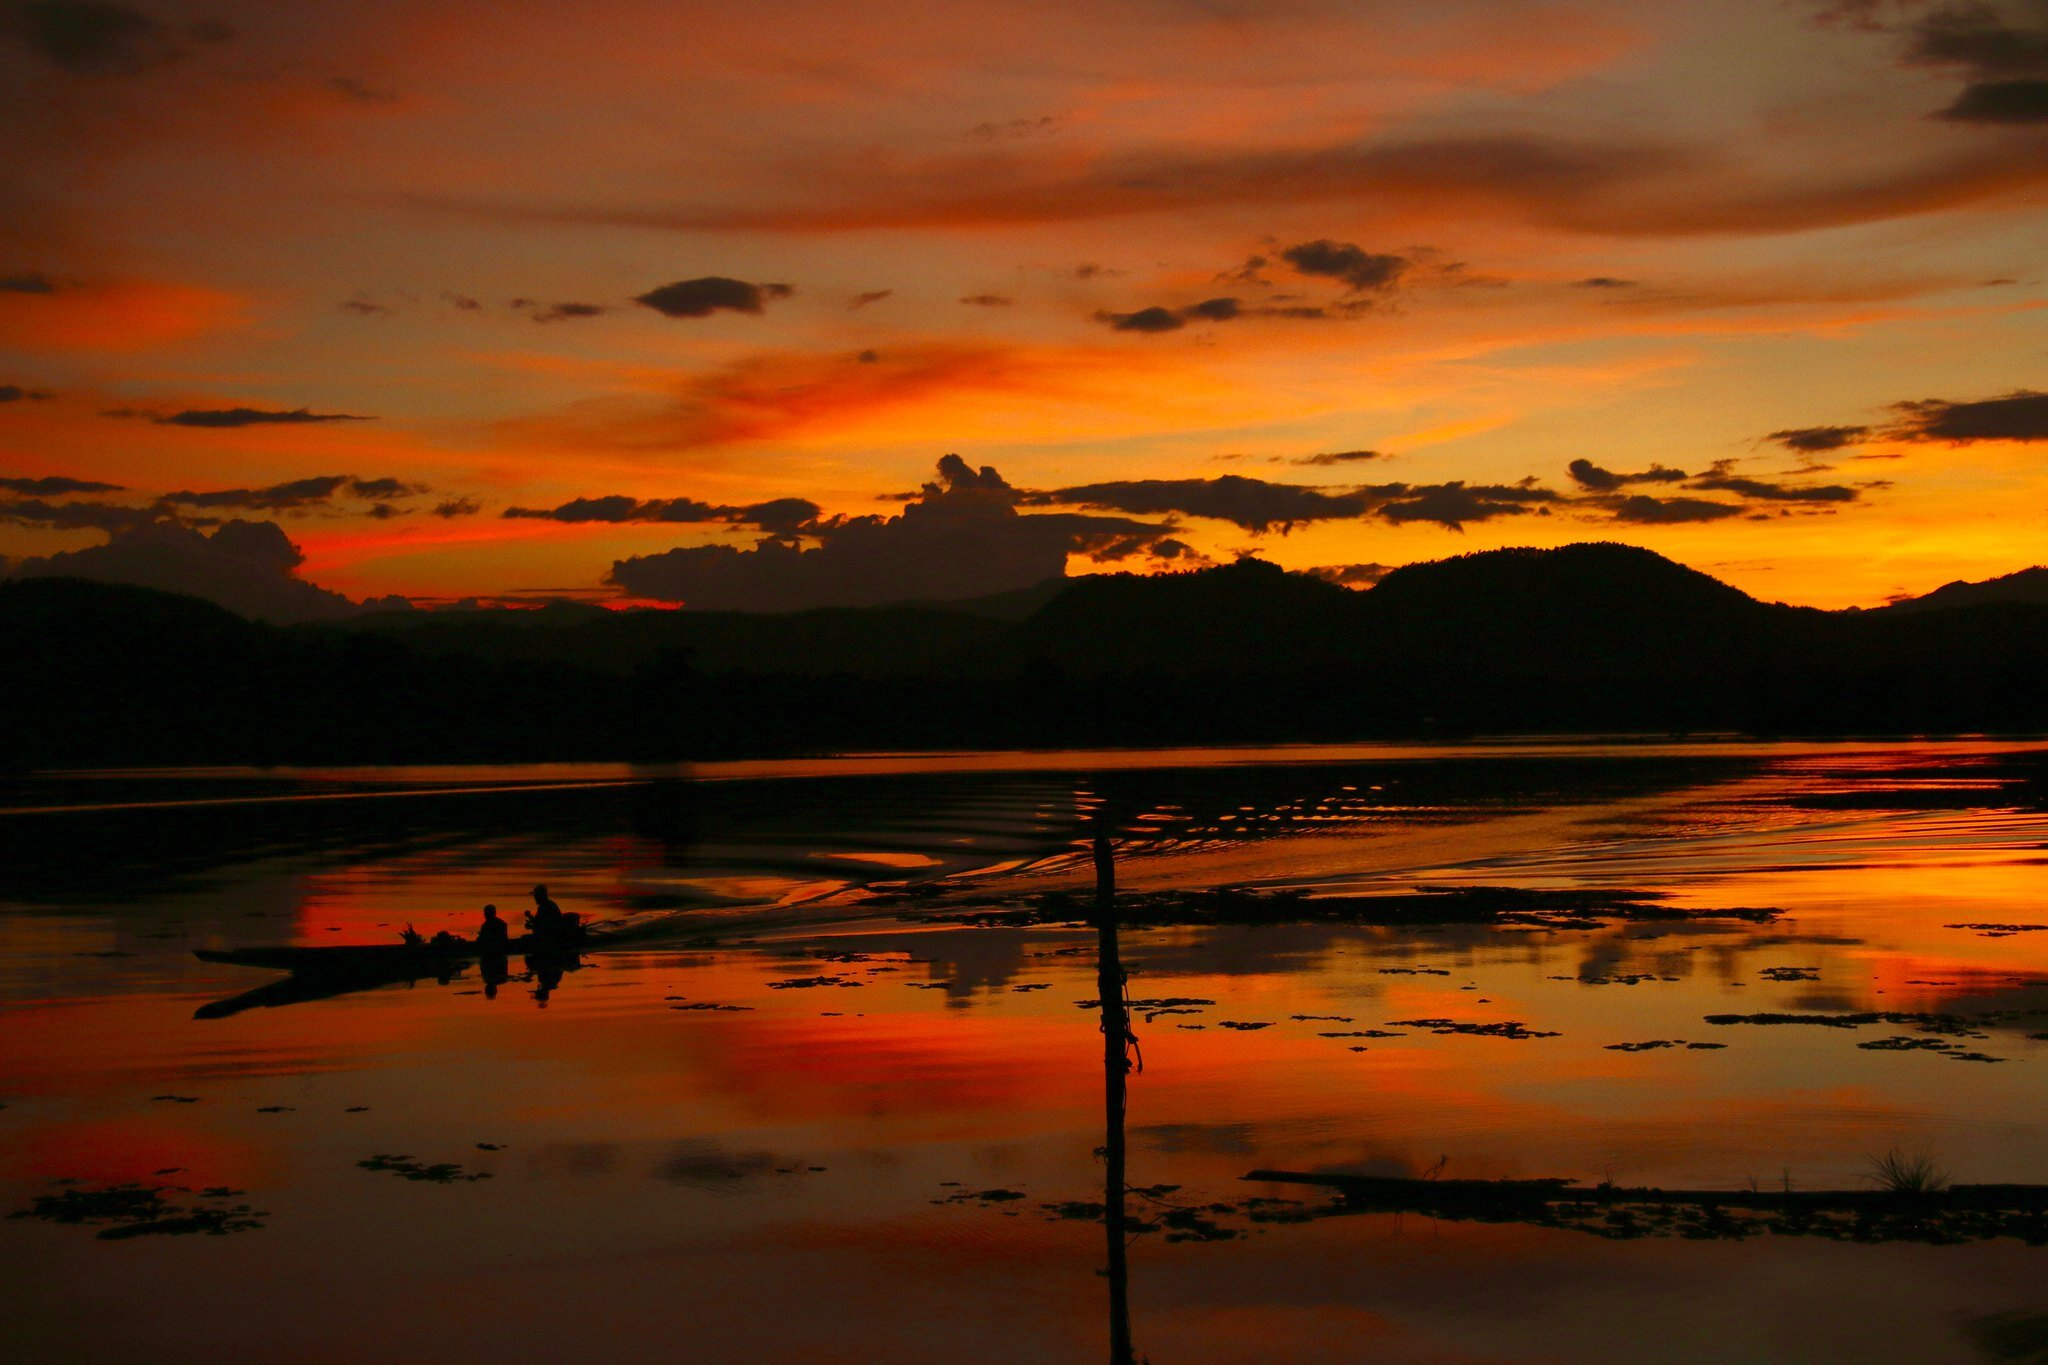 Sunset by river in Laos